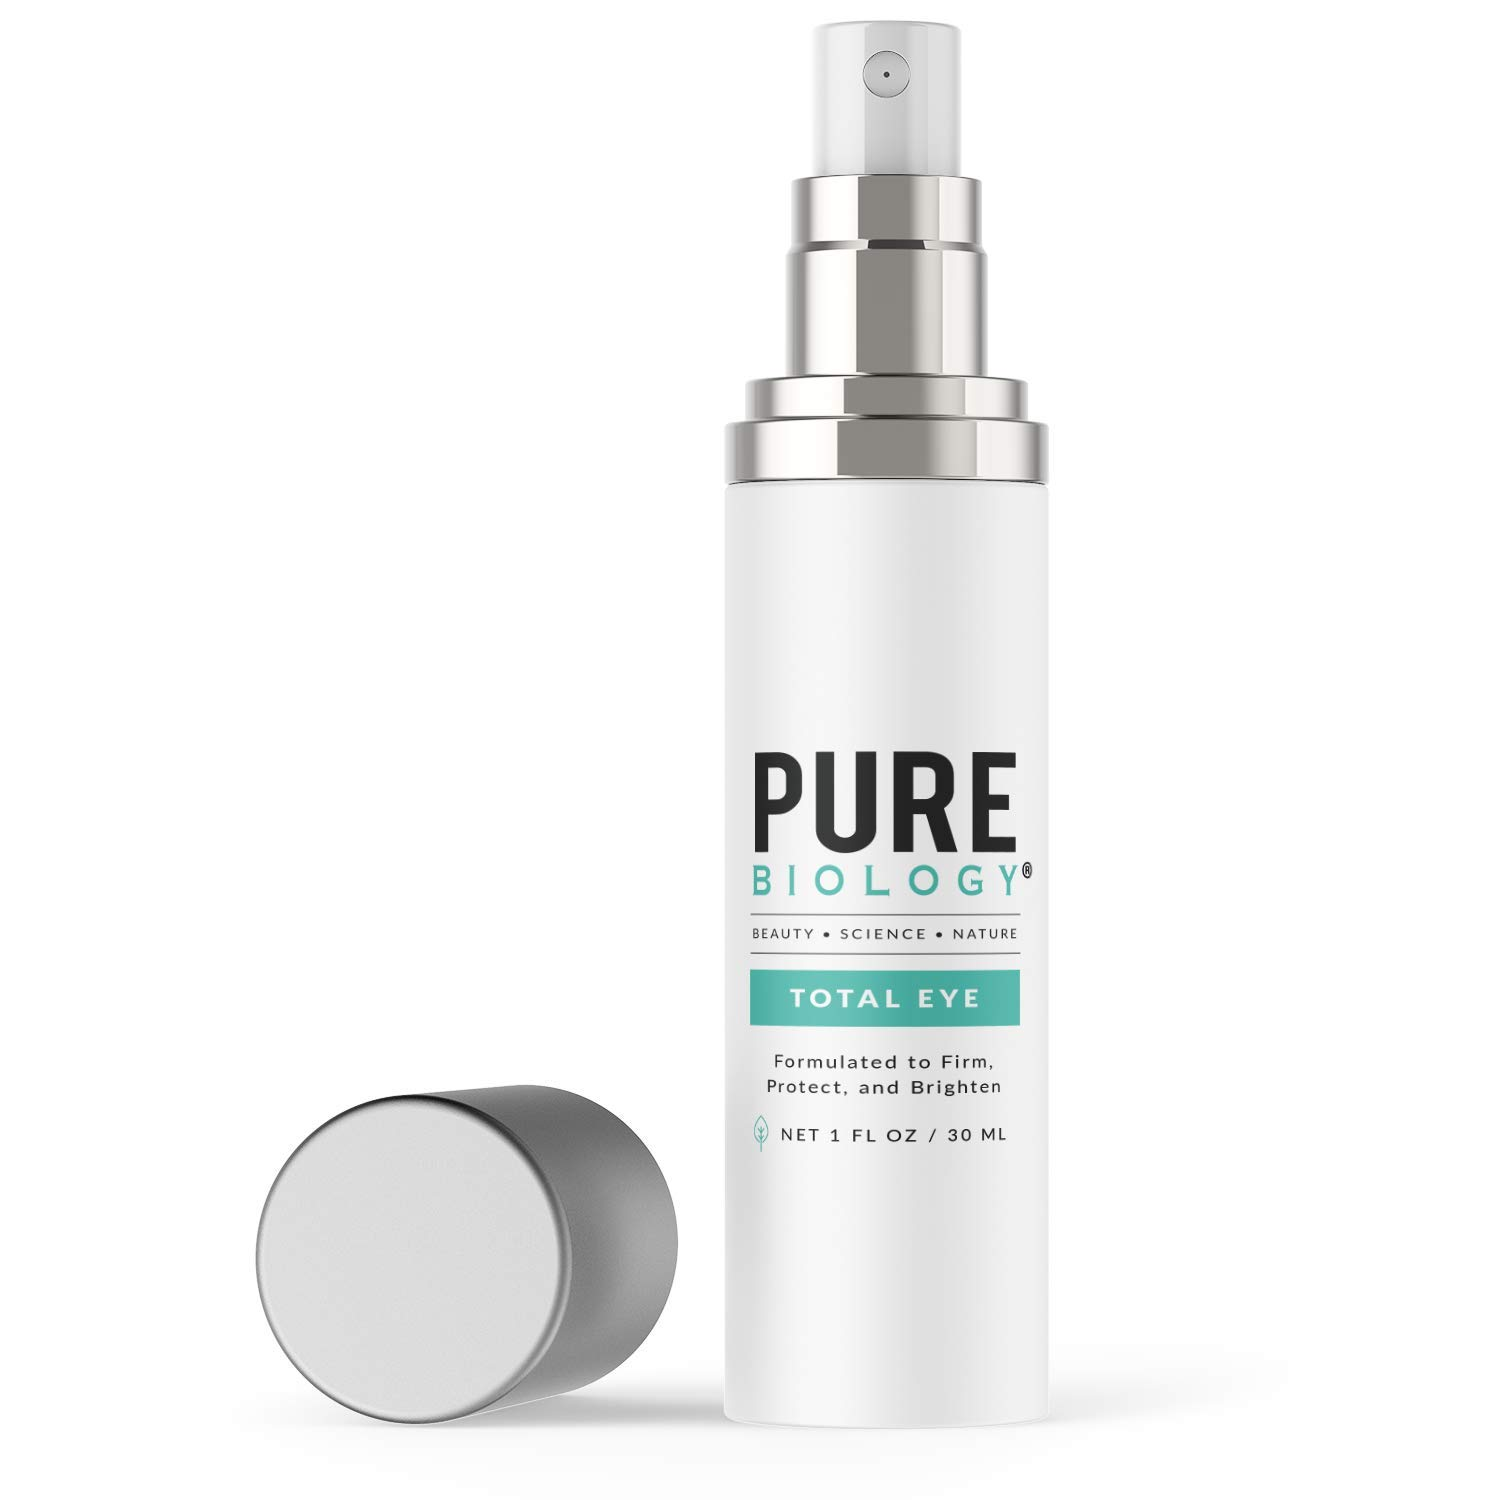 Pure Biology Premium Total Eye Cream Serum